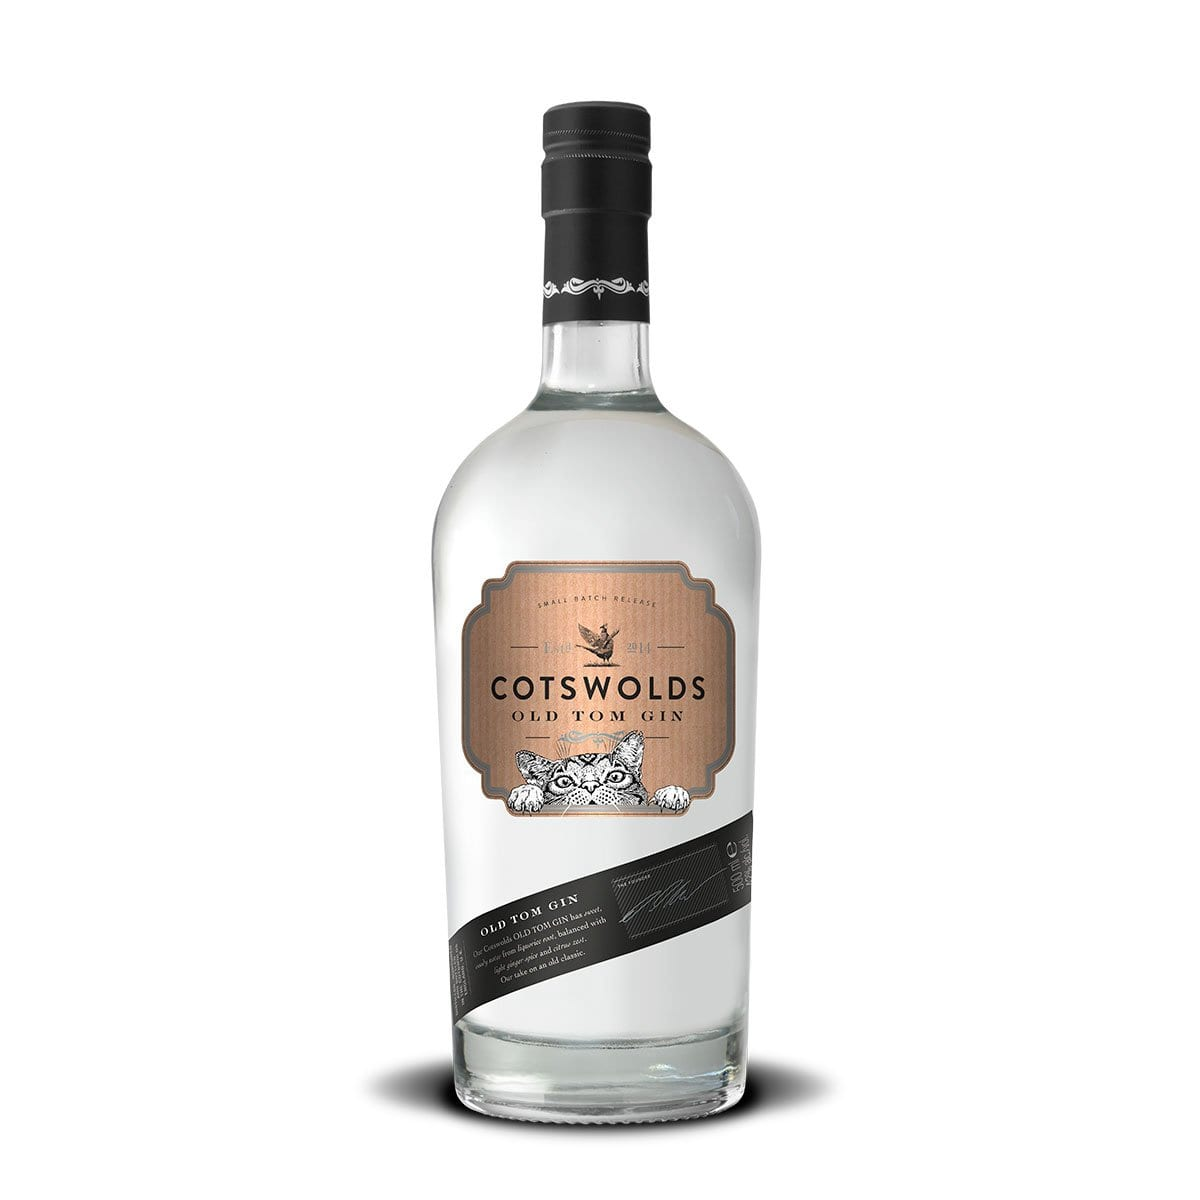 Cotswolds Old Tom Gin from Cotswold Distillery